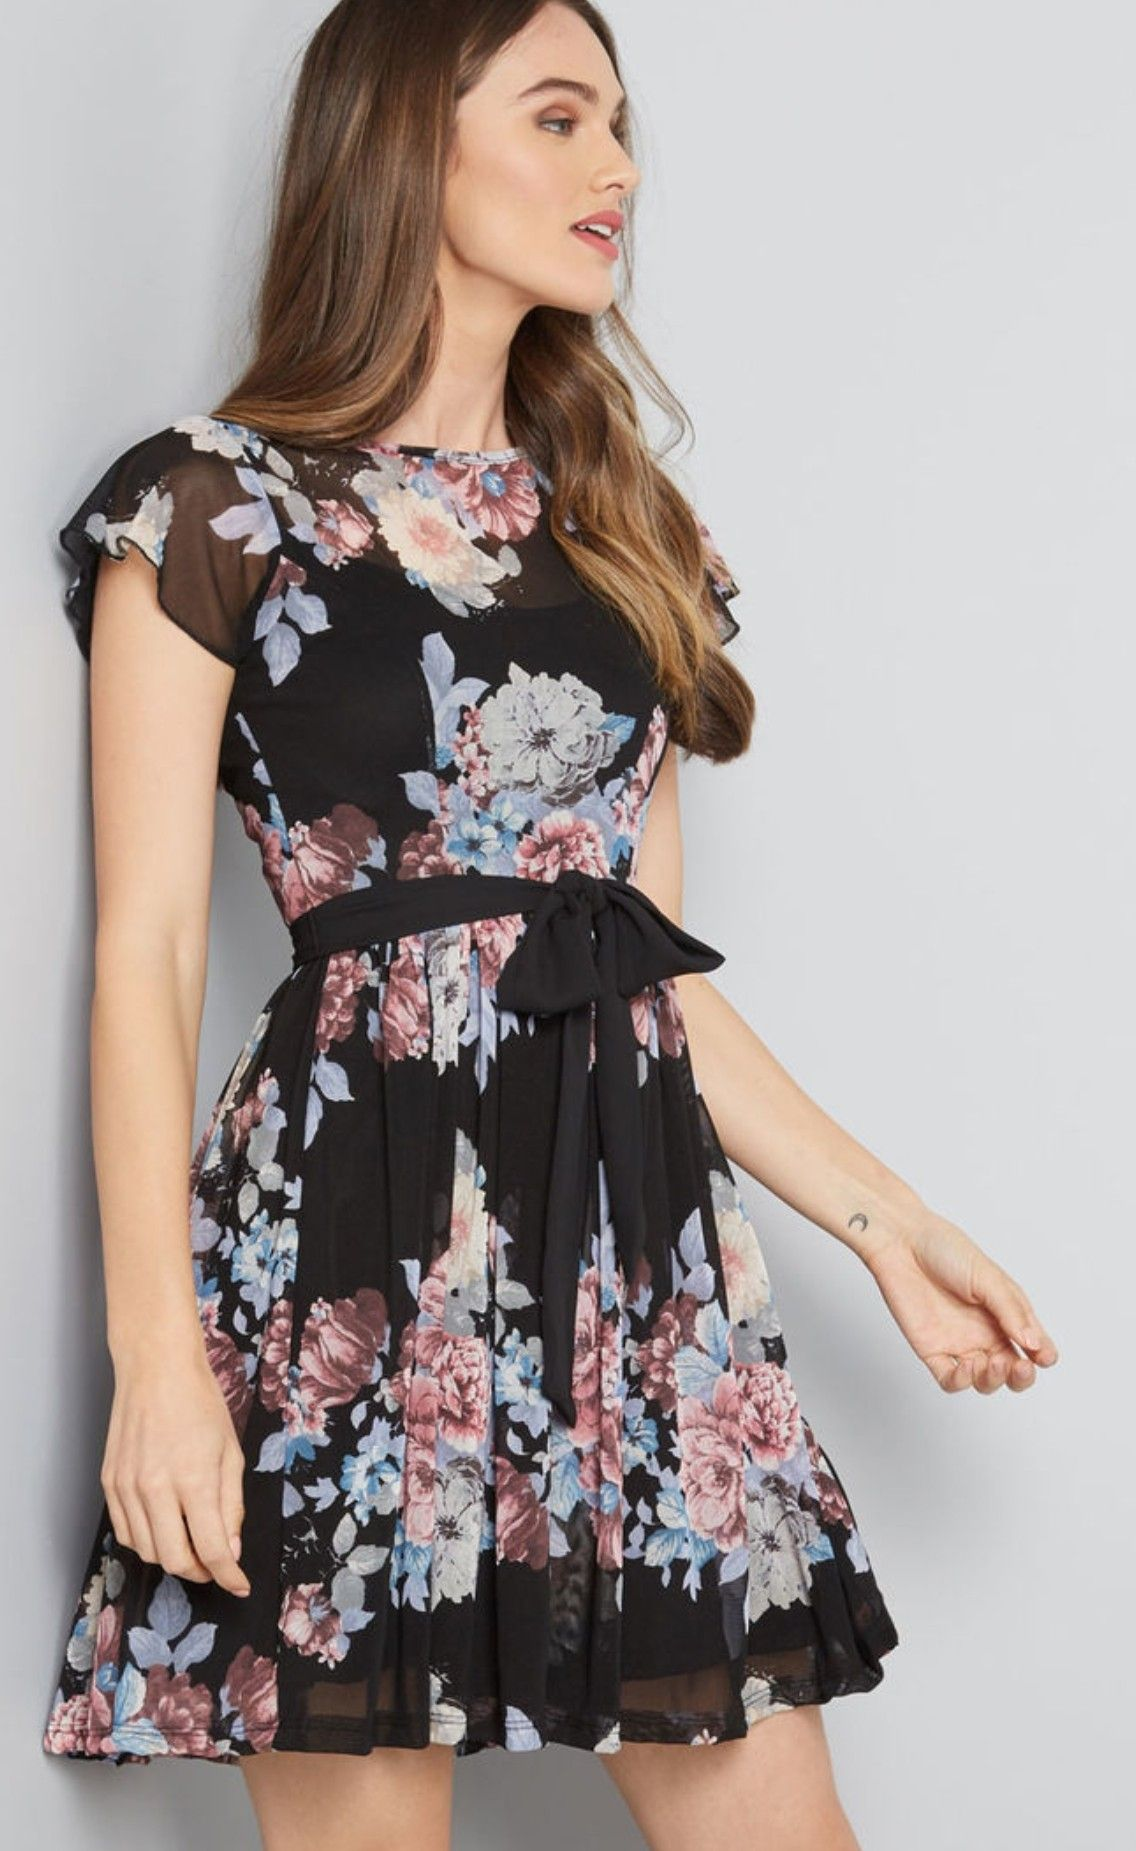 Fancy Seeing You Here Floral Dress Classy Dress Floral Dress Fashion Floral Dress Casual [ 1851 x 1136 Pixel ]